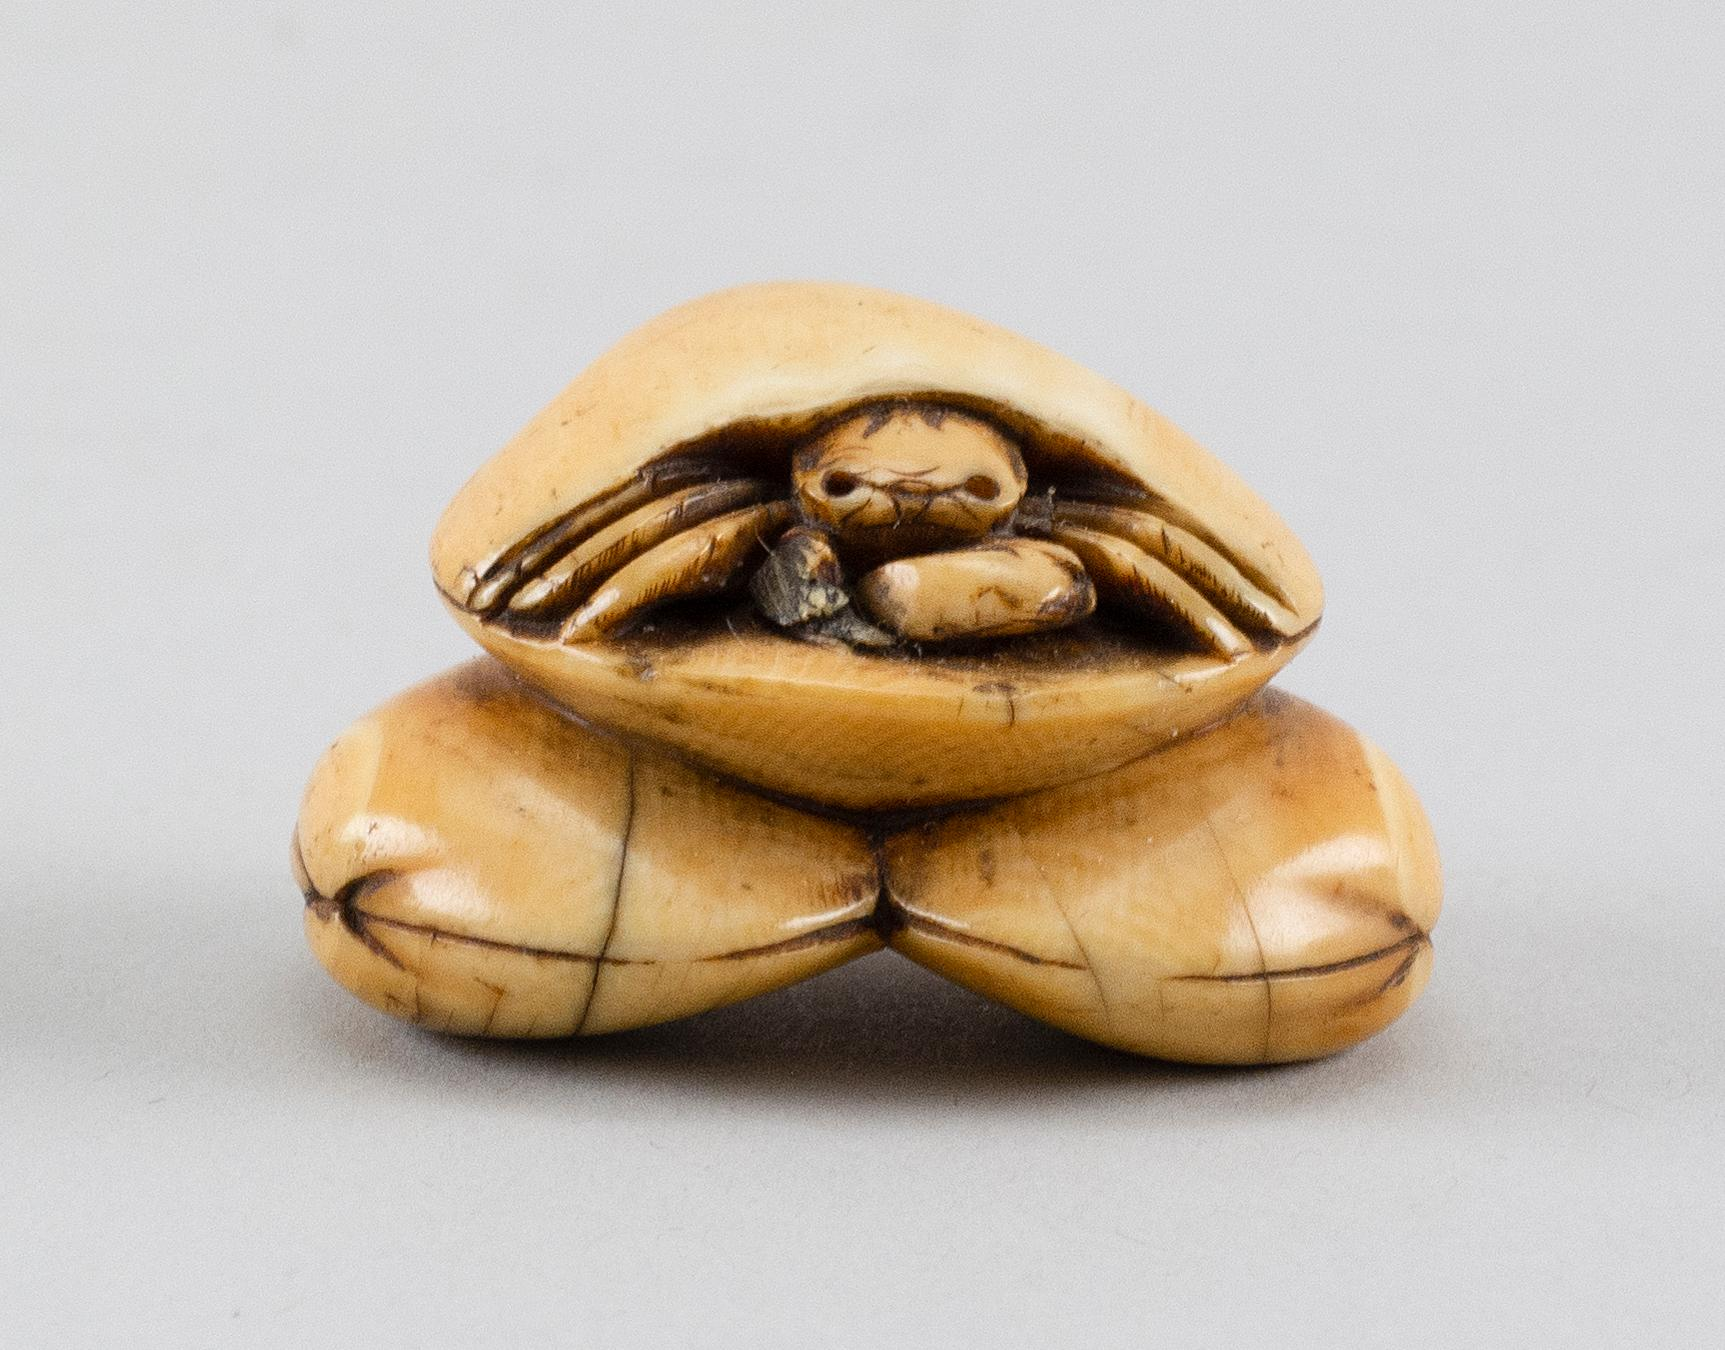 """IVORY NETSUKE In the form of a crab crawling out of a clamshell mountain. Height 1.8""""."""